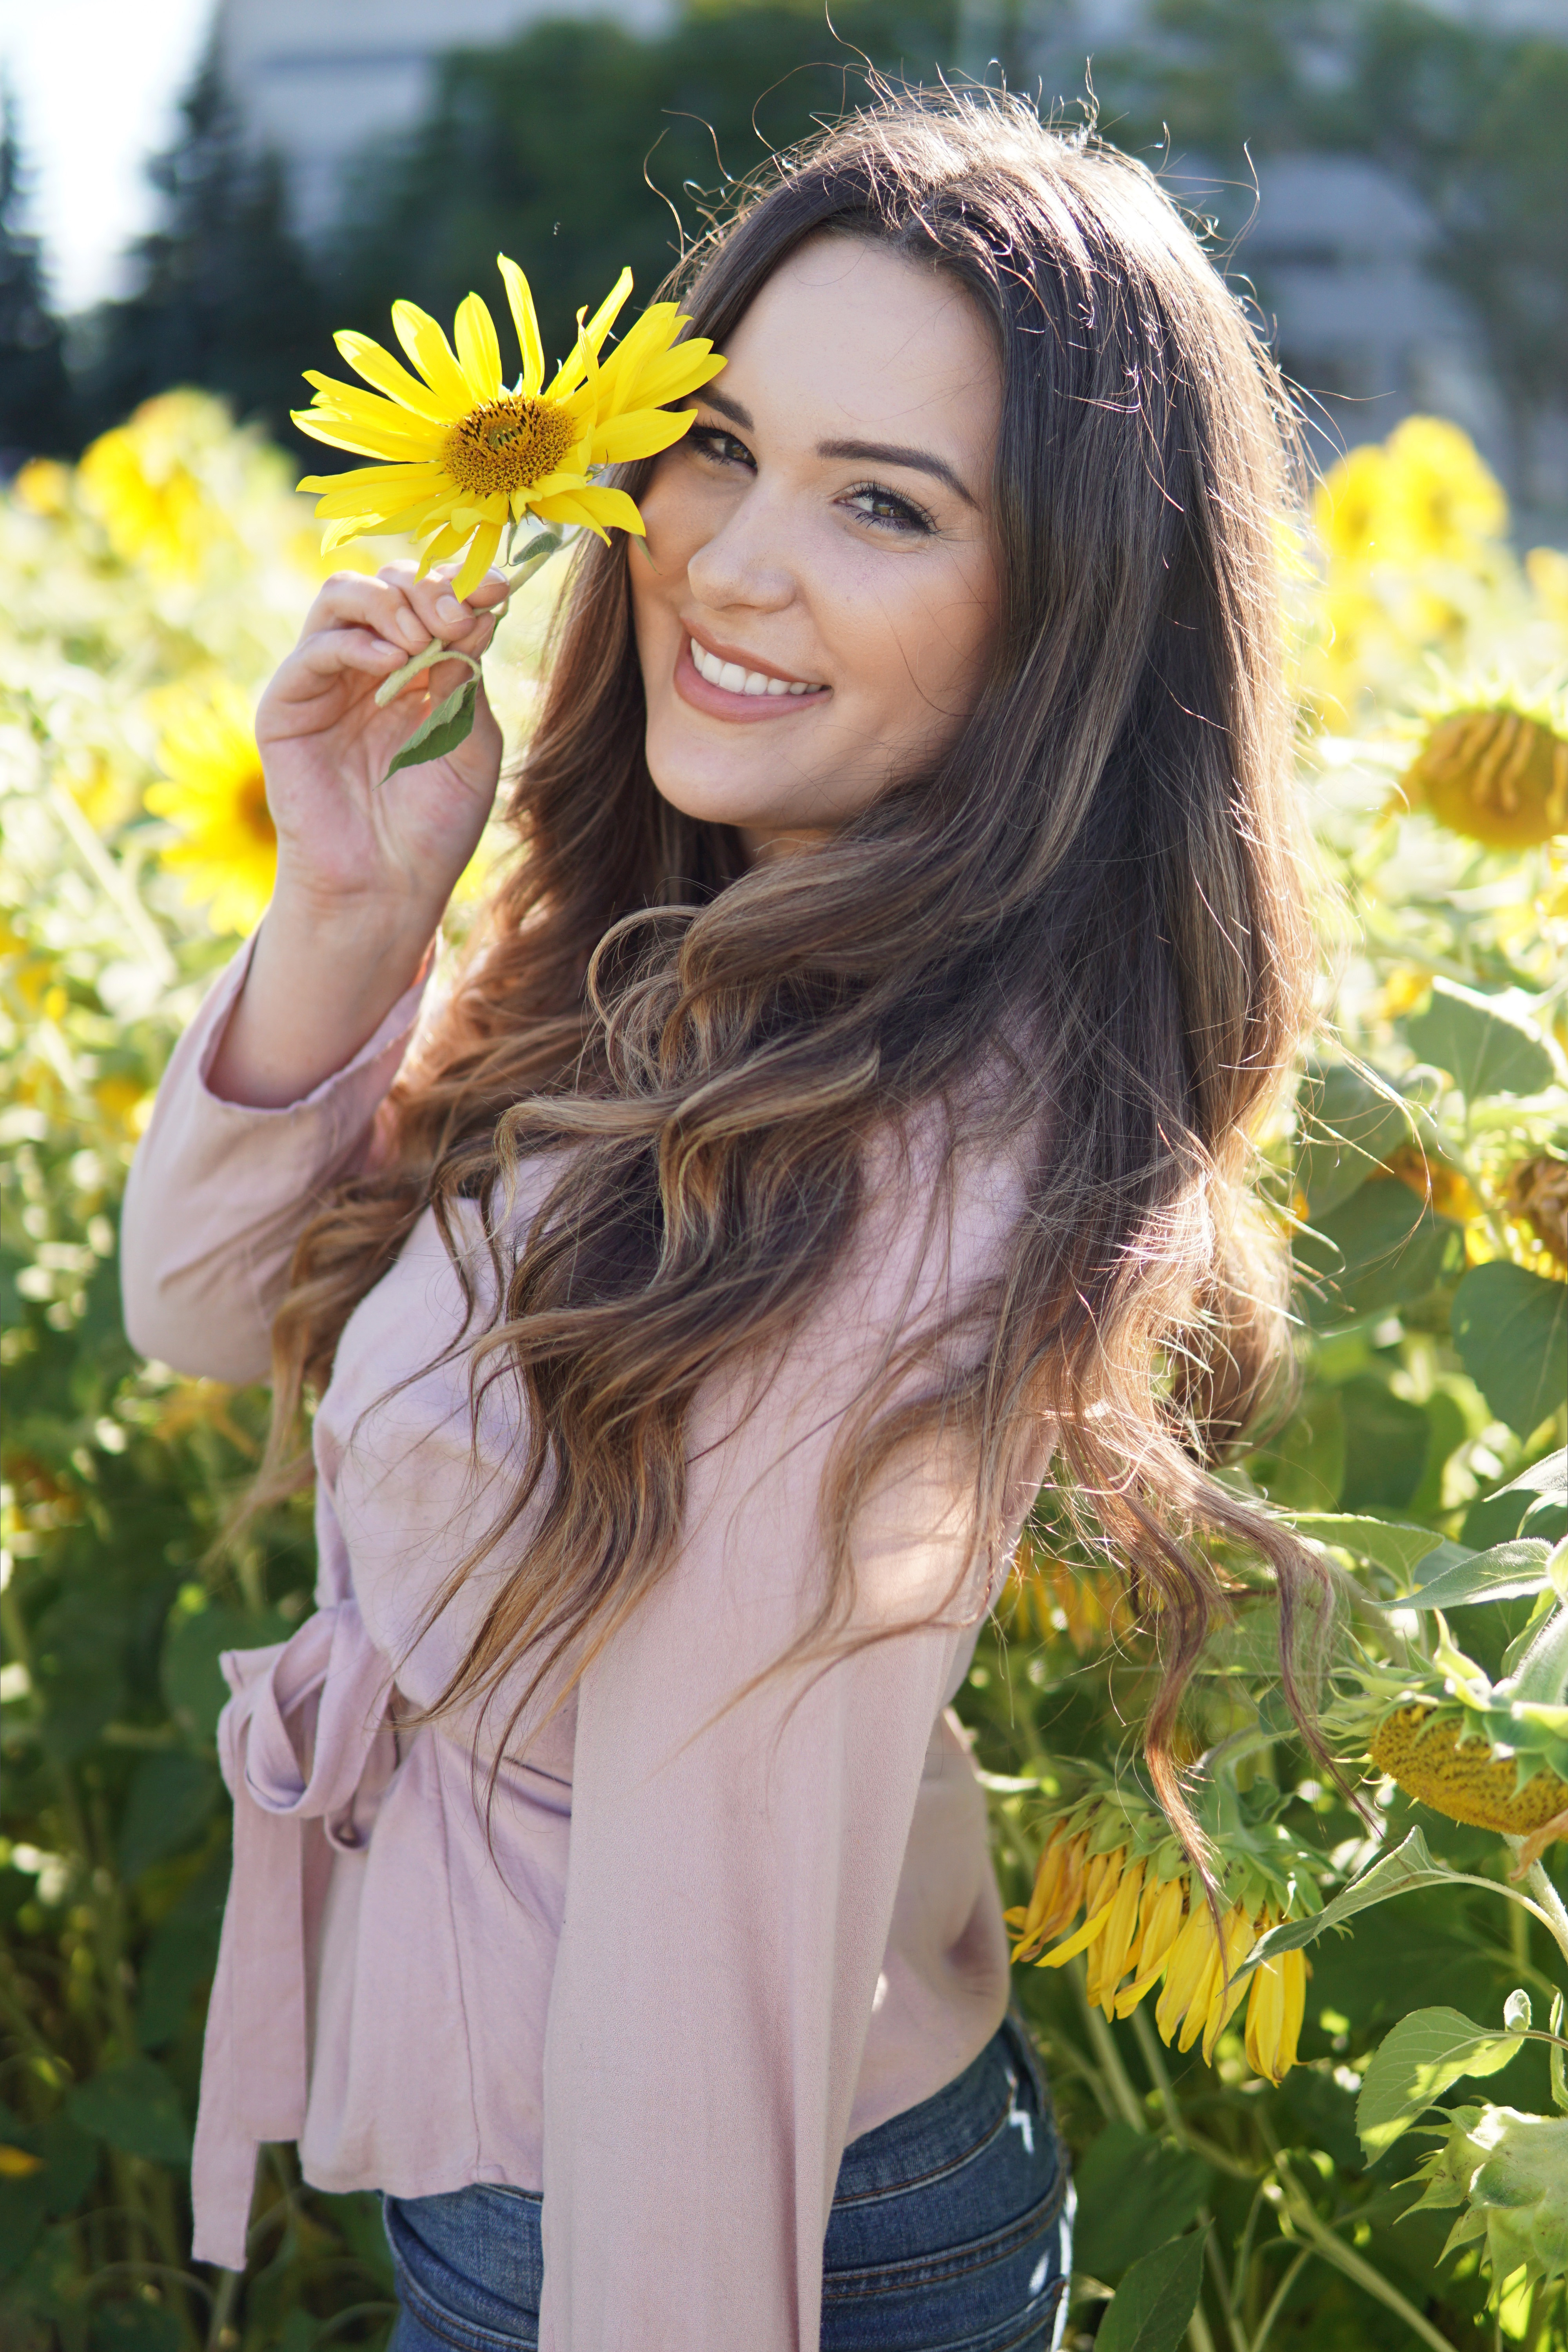 Mash Elle | pink shirt | hello fall hair care | changing seasons | Garnier Hair | sunflowers | hairstyle fall